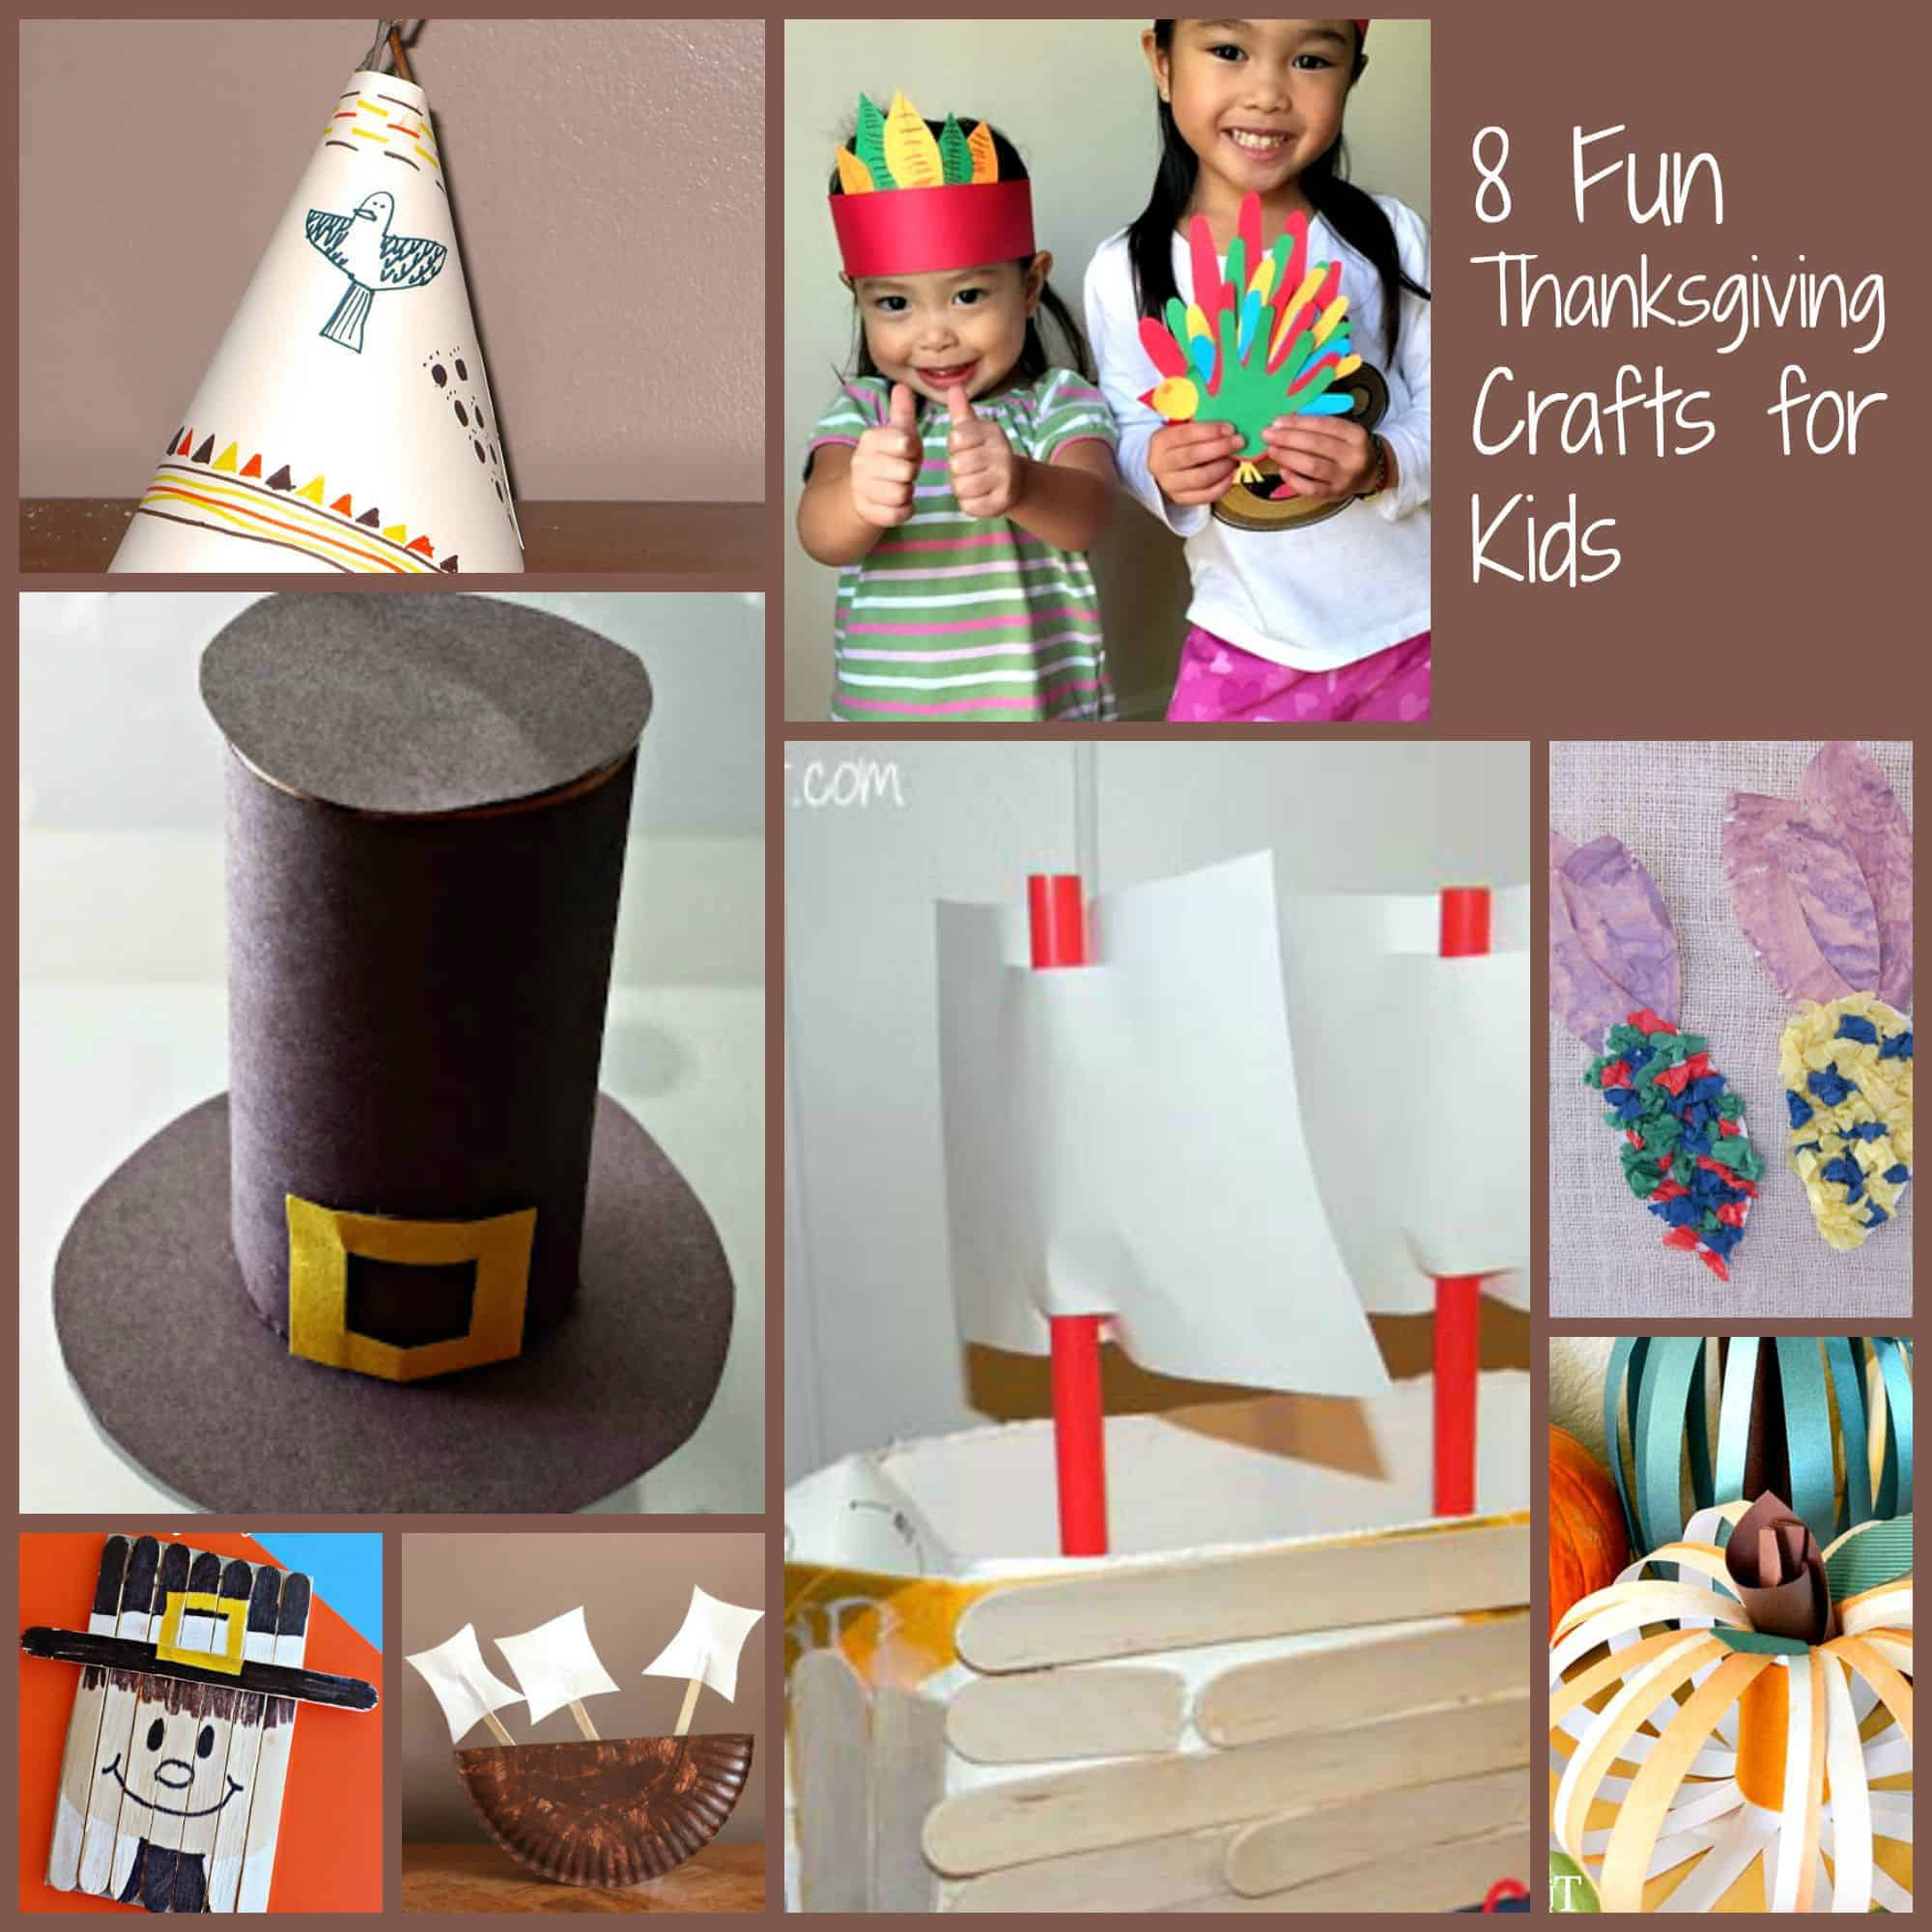 Looking for non-turkey Thanksgiving crafts for kids? We heard your pleas and rounded up 8 adorable ideas! Check them out and getting crafty!